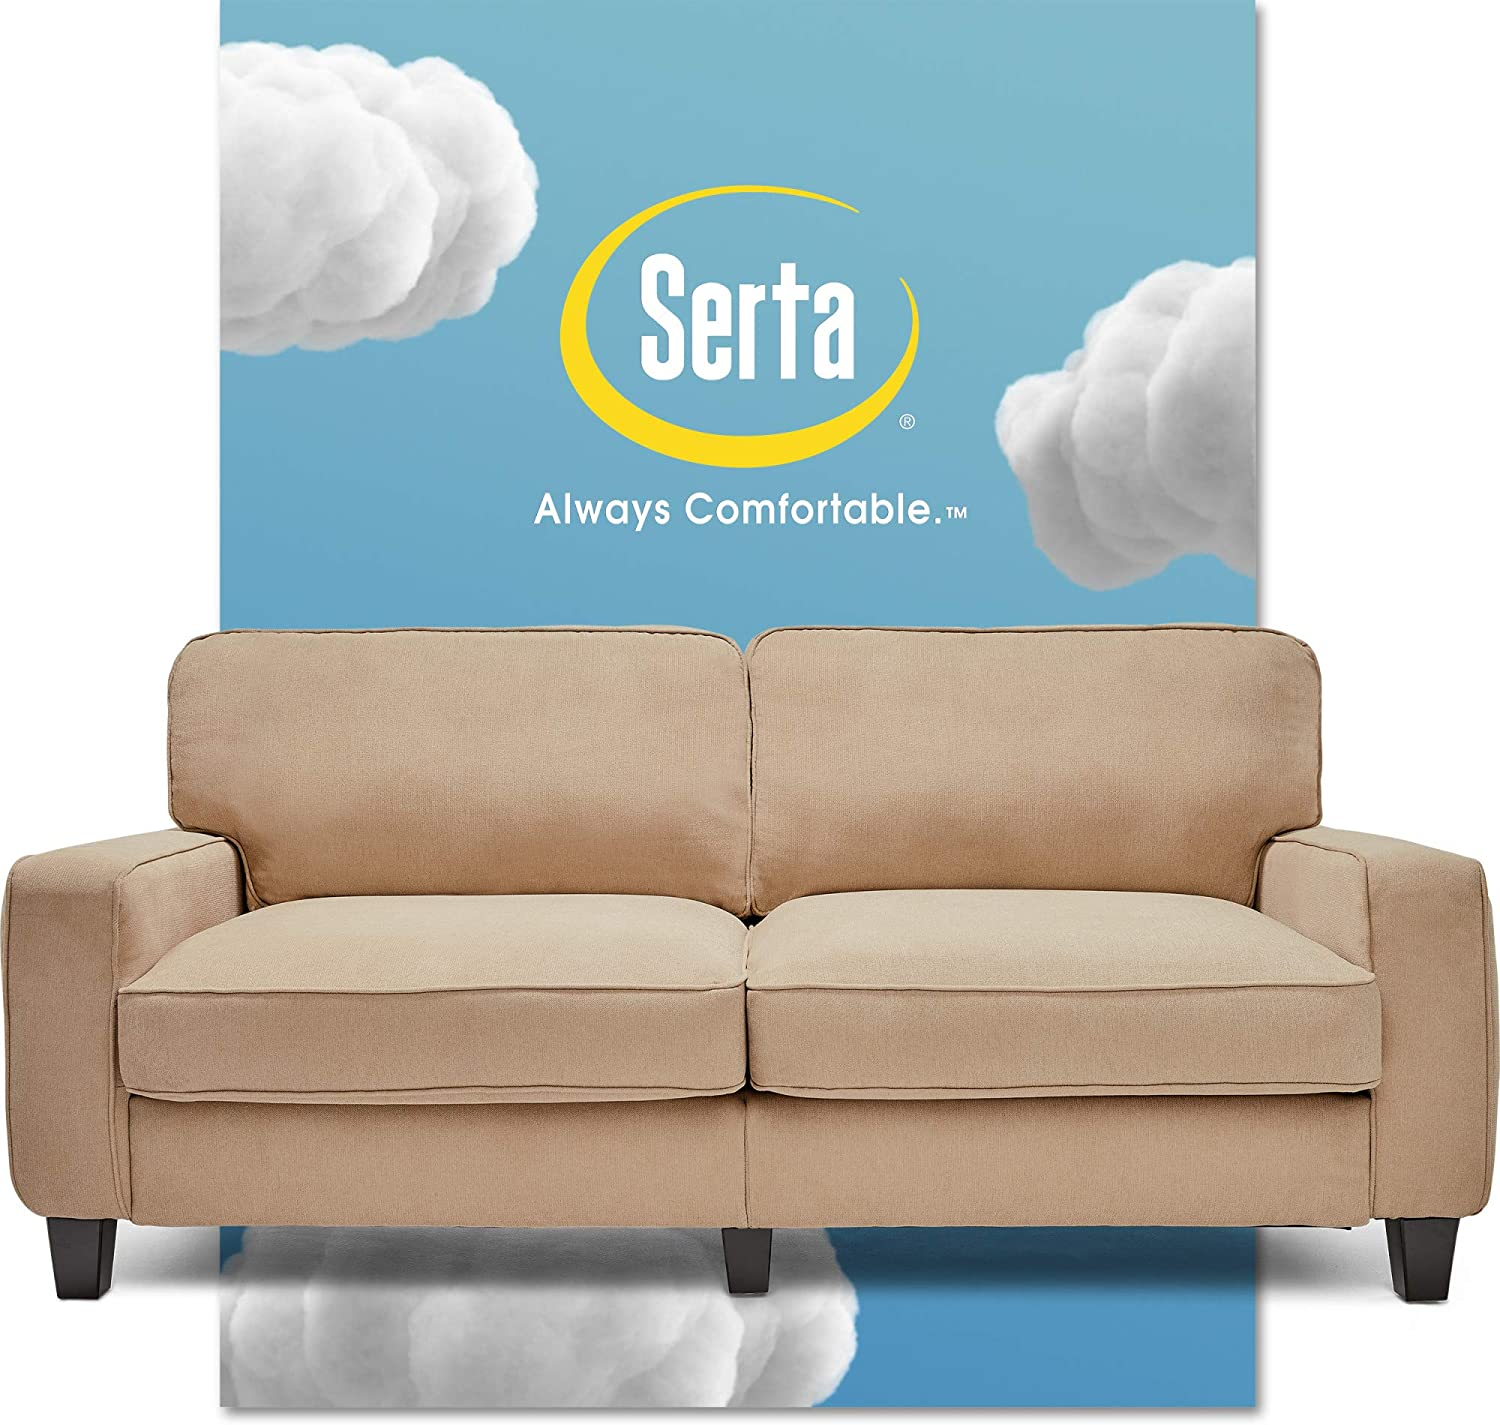 - What Is The Best Sofa For Back Pain Sufferers - ChairPicks